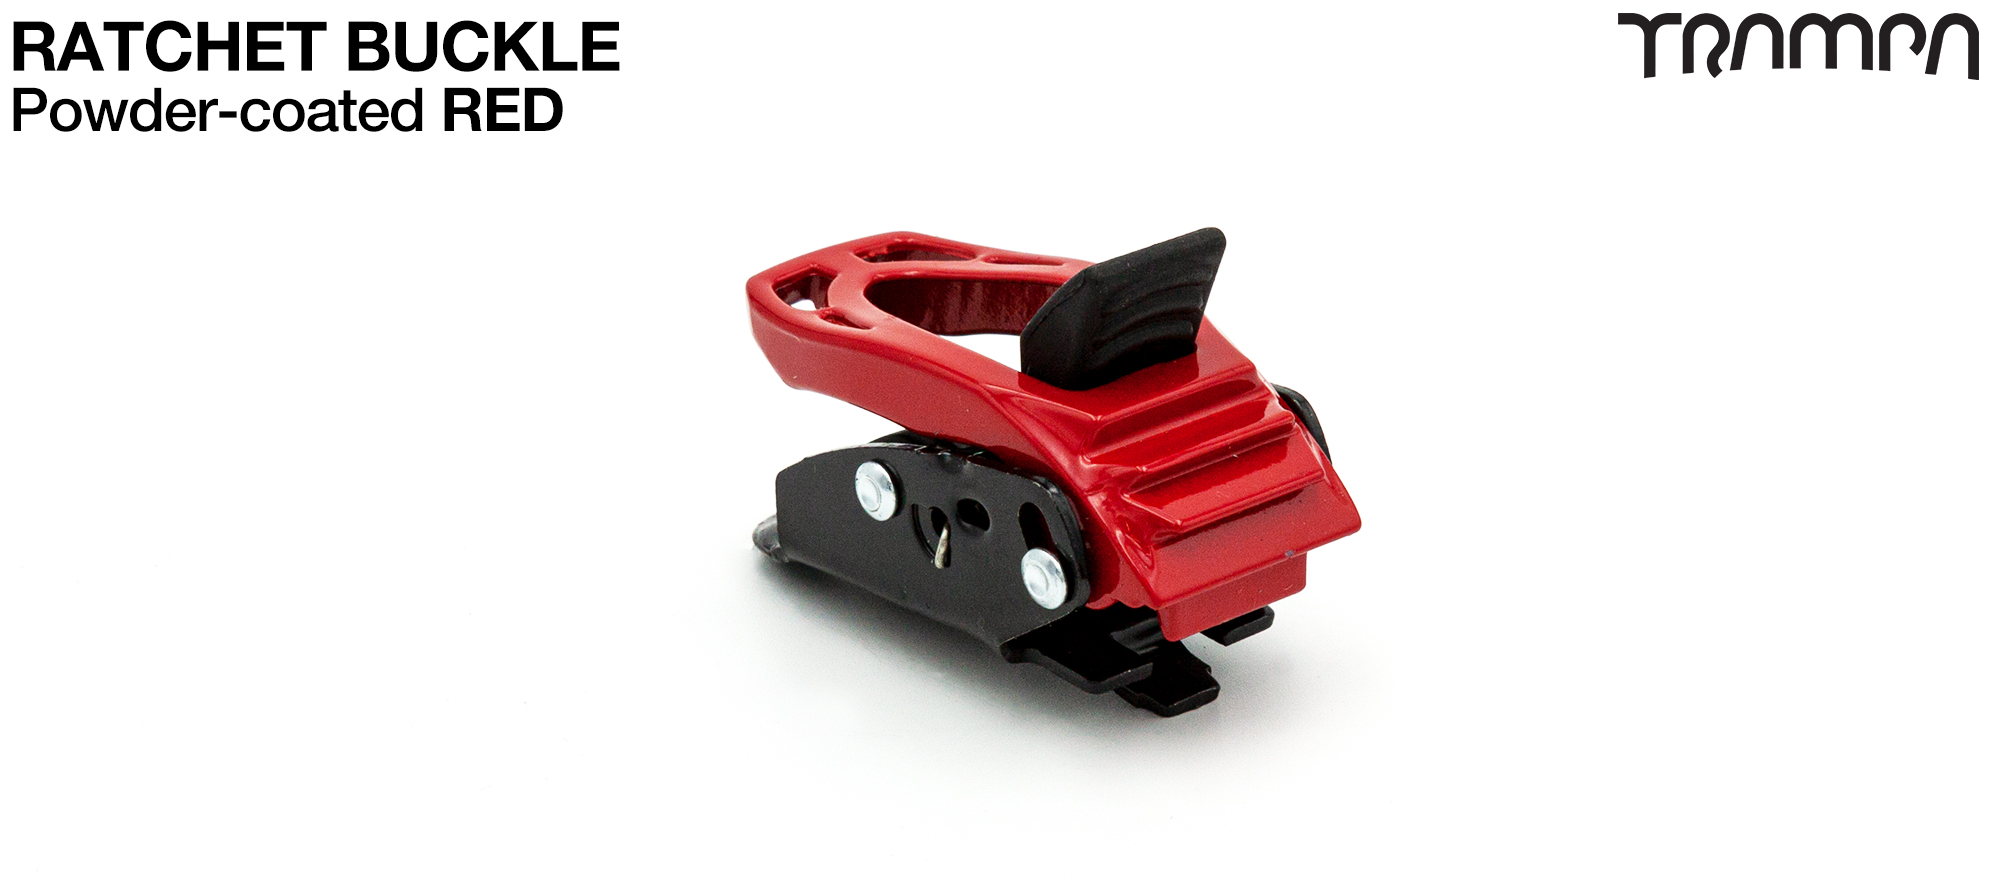 RED Powder Coated Ratchet Buckle £7.50